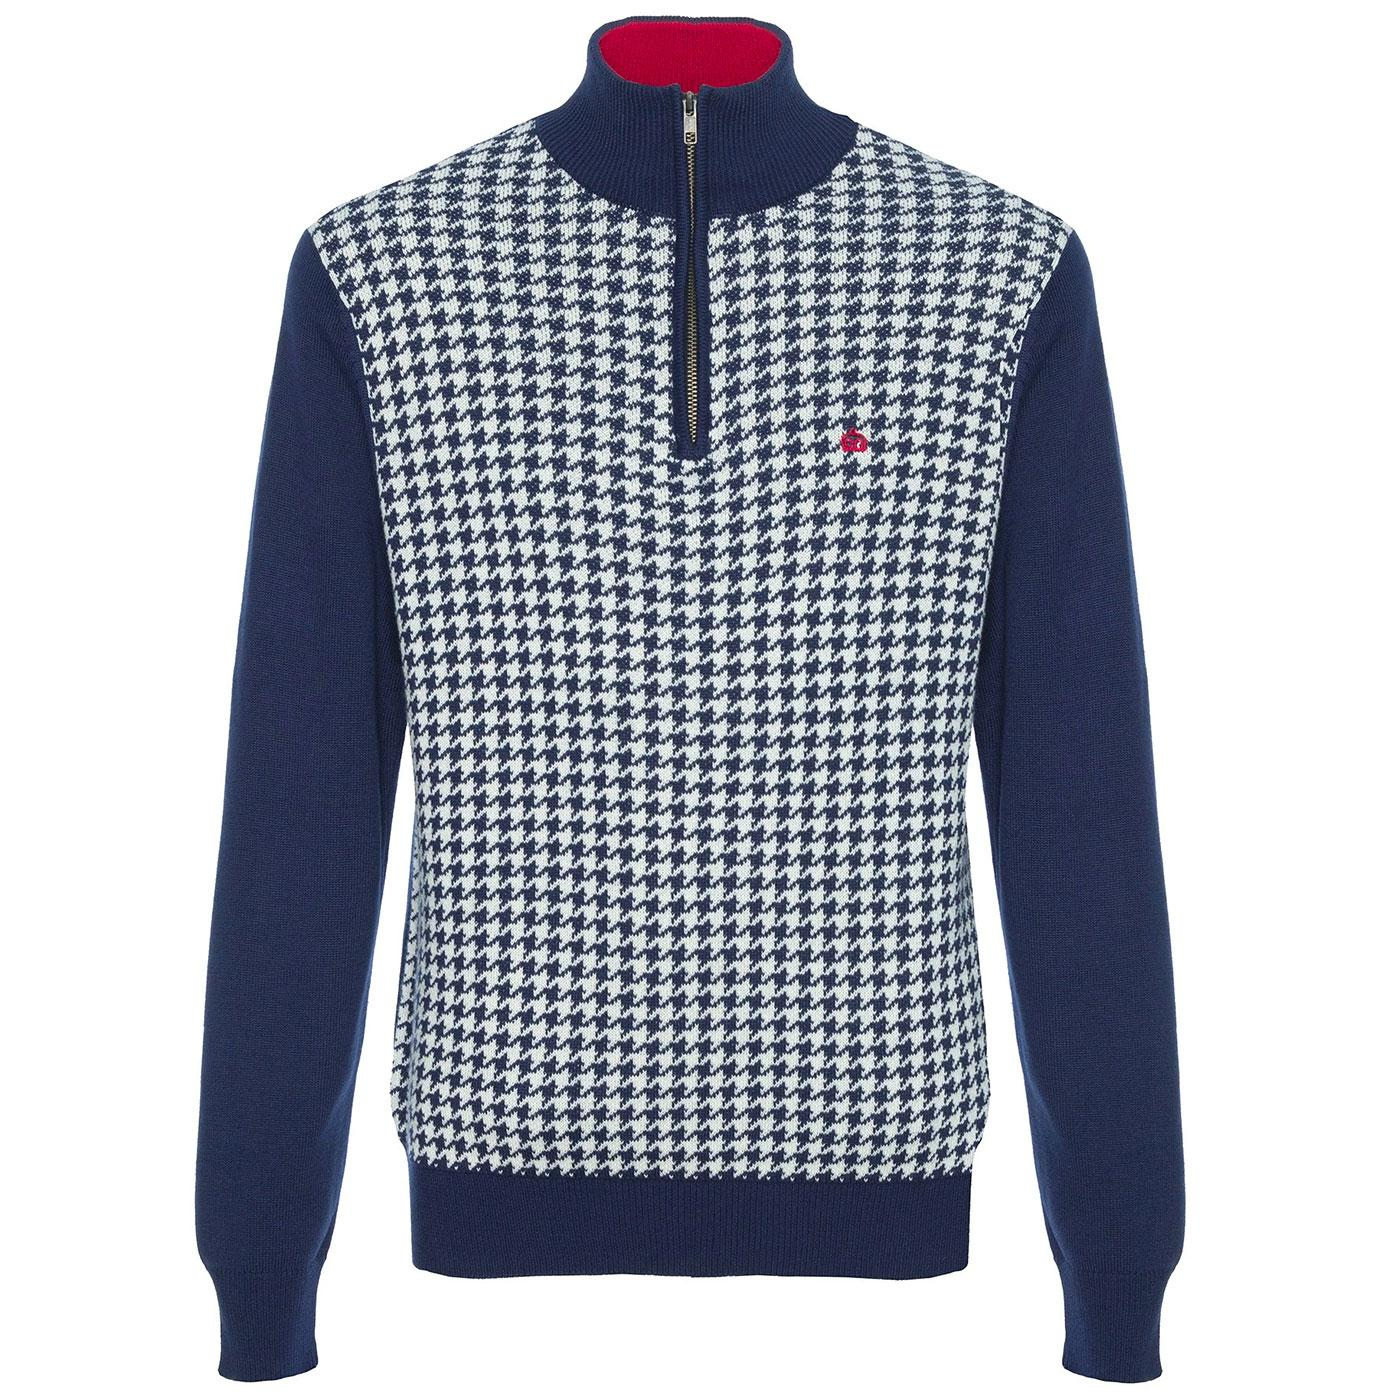 Lockhill MERC Retro Mod Dogtooth Knitted Zip Top N